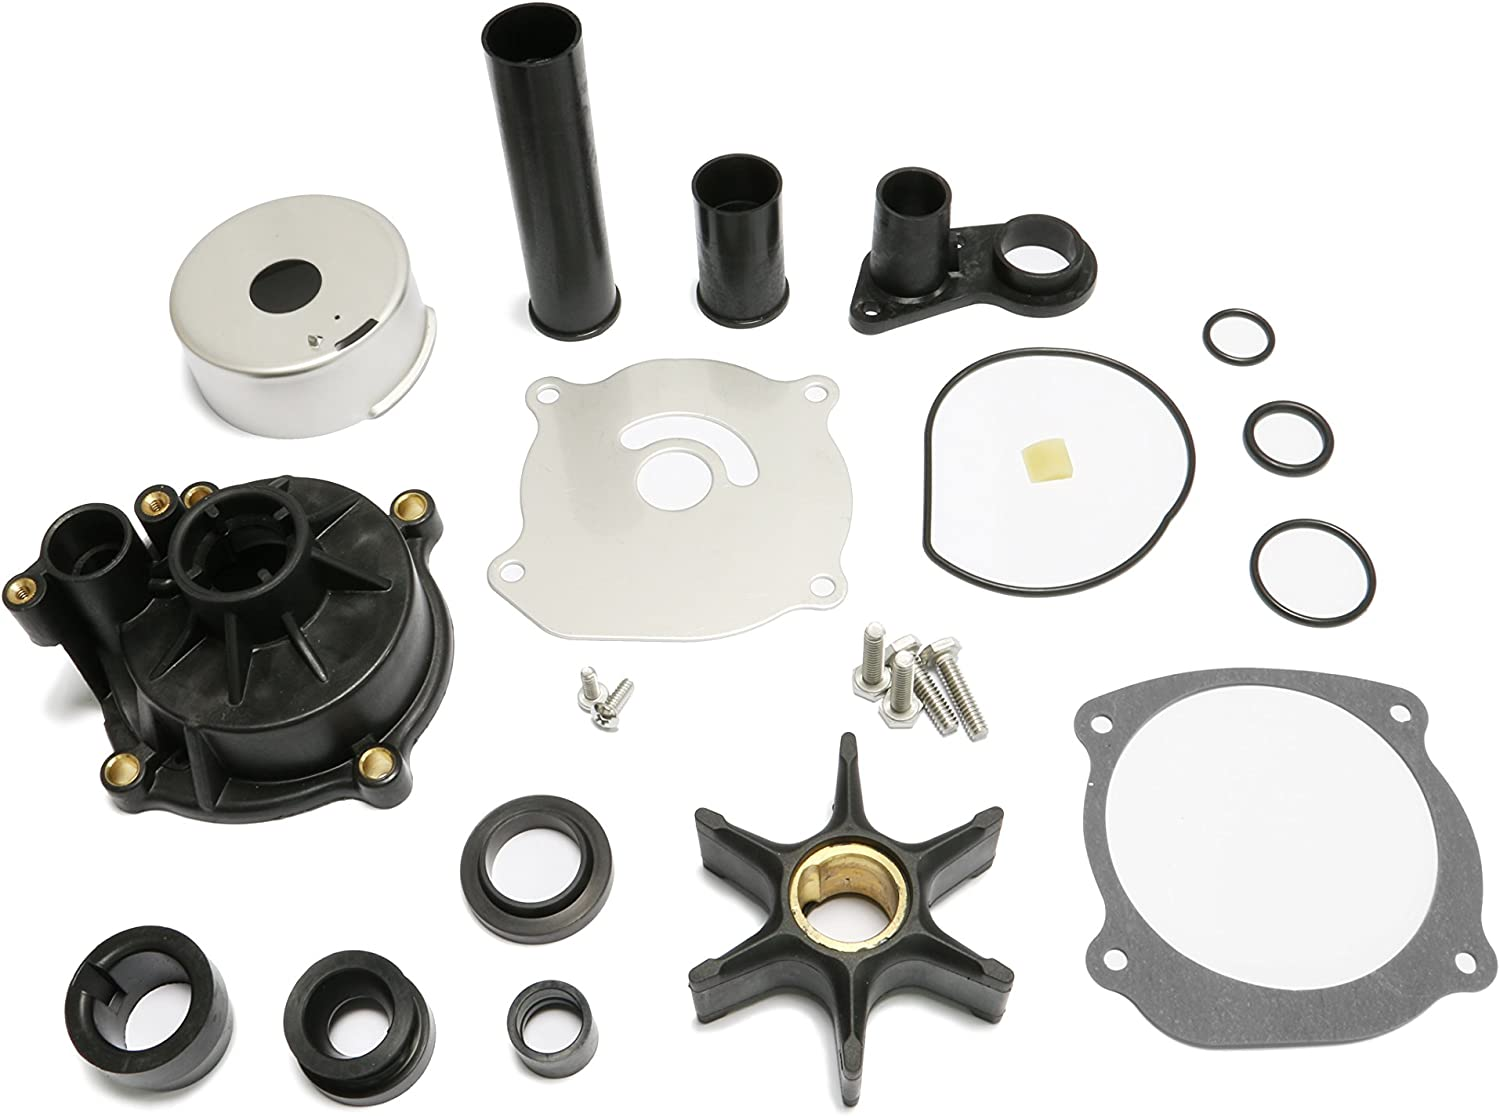 PumuHo Johnson Evinrude Outboard Water Pump Kit Replacement 5001595 2004-07 75-250HP with Housing 435929 18-3315-2